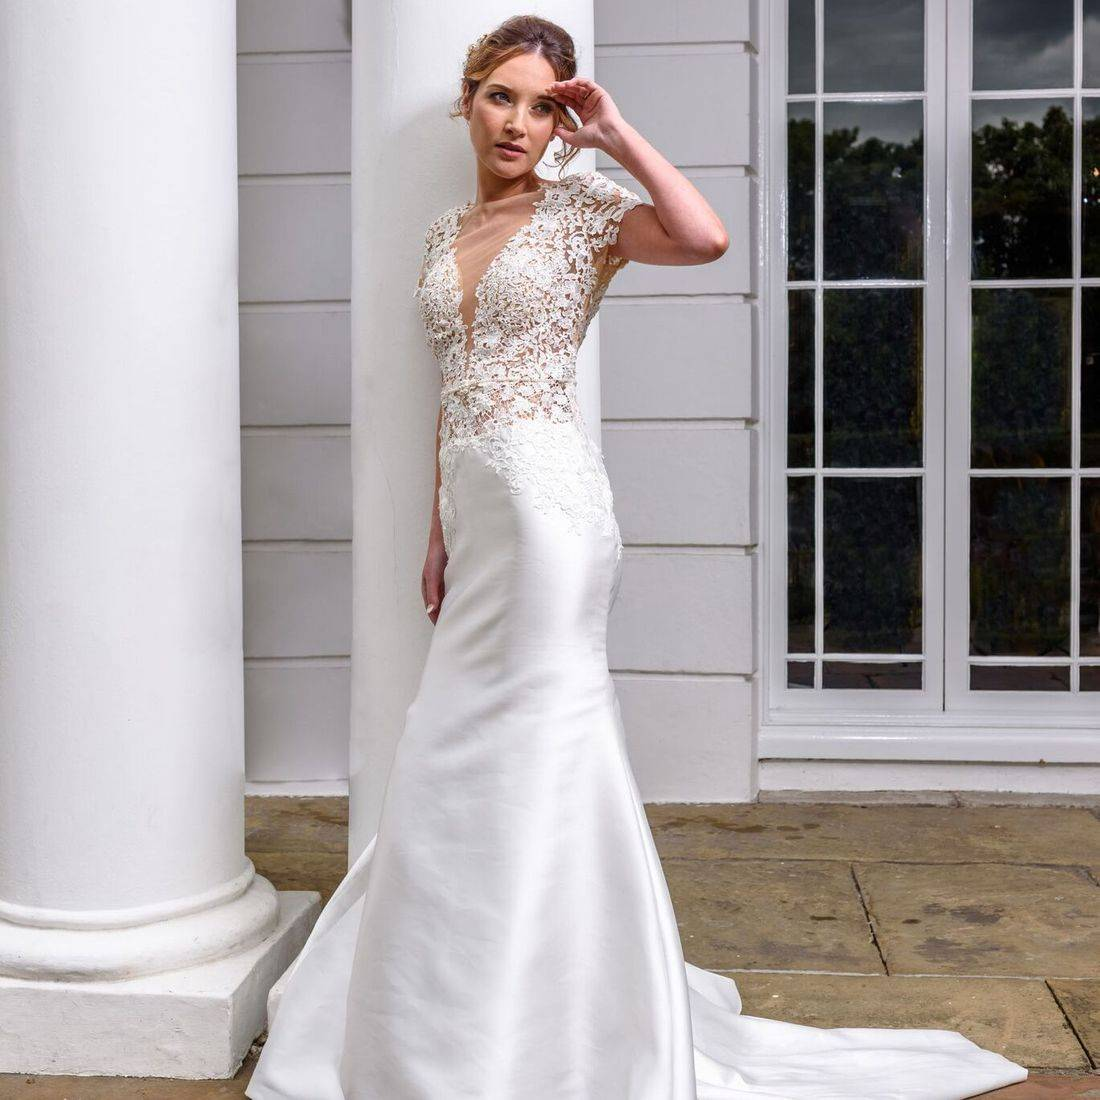 mori lee, lace wedding dress, illusion wedding dress, dipped neckline wedding dress, dipped back wedding dress, wedding dress with sleeve, wedding dress with short sleeve